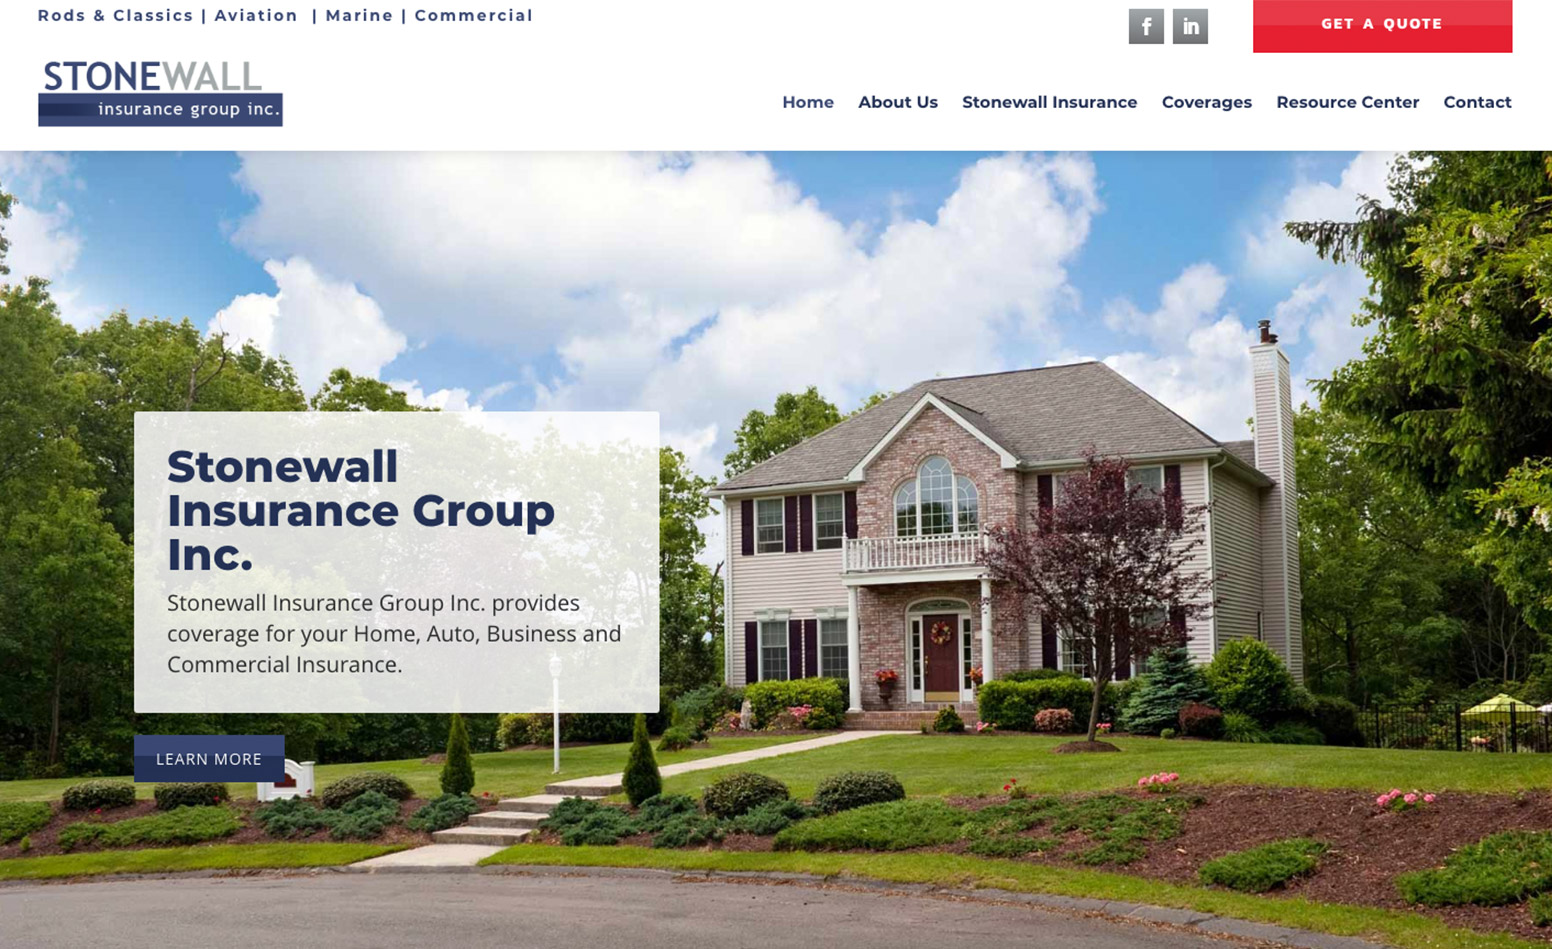 Stonewall Insurance Group website, digital marketing agency MA, advertising agency CT, Envision Marketing Group, graphic design MA